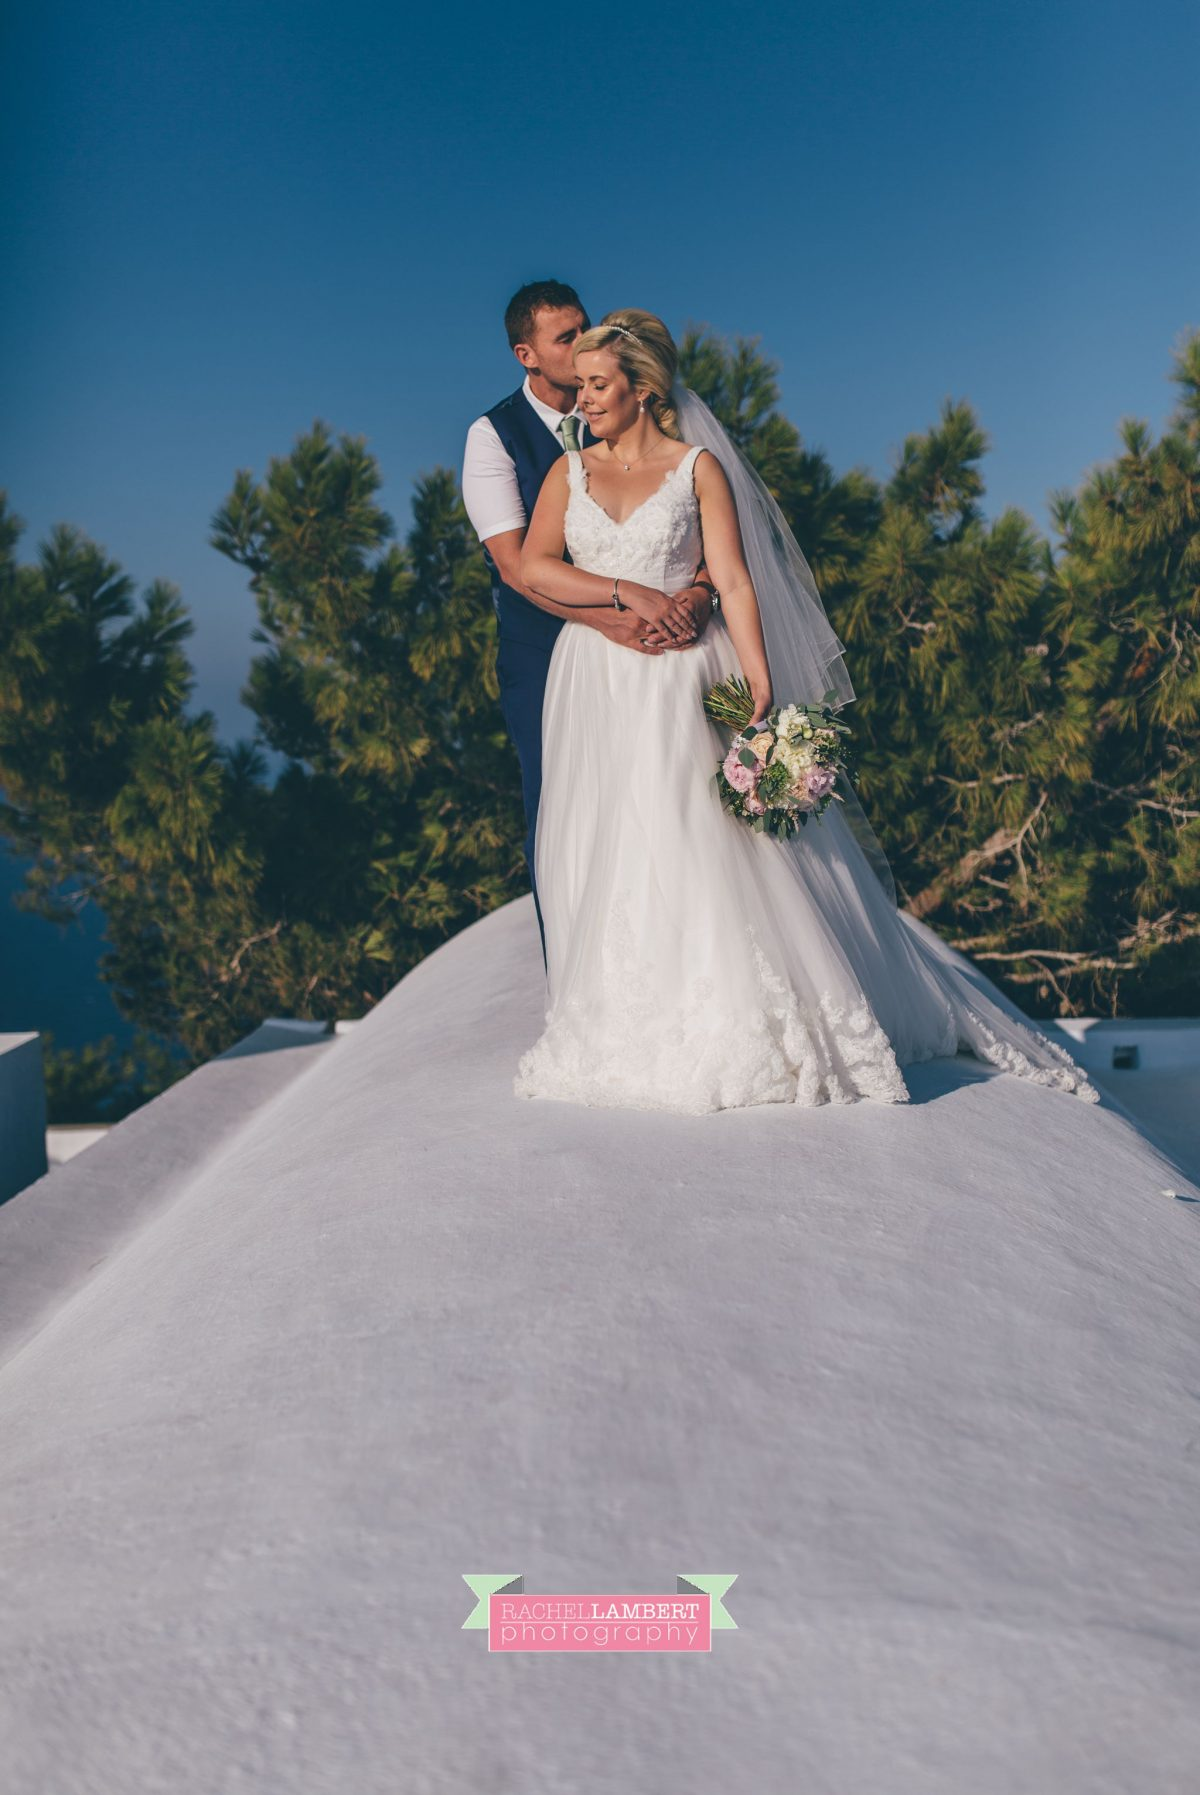 destination_wedding_photographer_santorini_greece_leCiel_rachel_lambert_photography_ 47